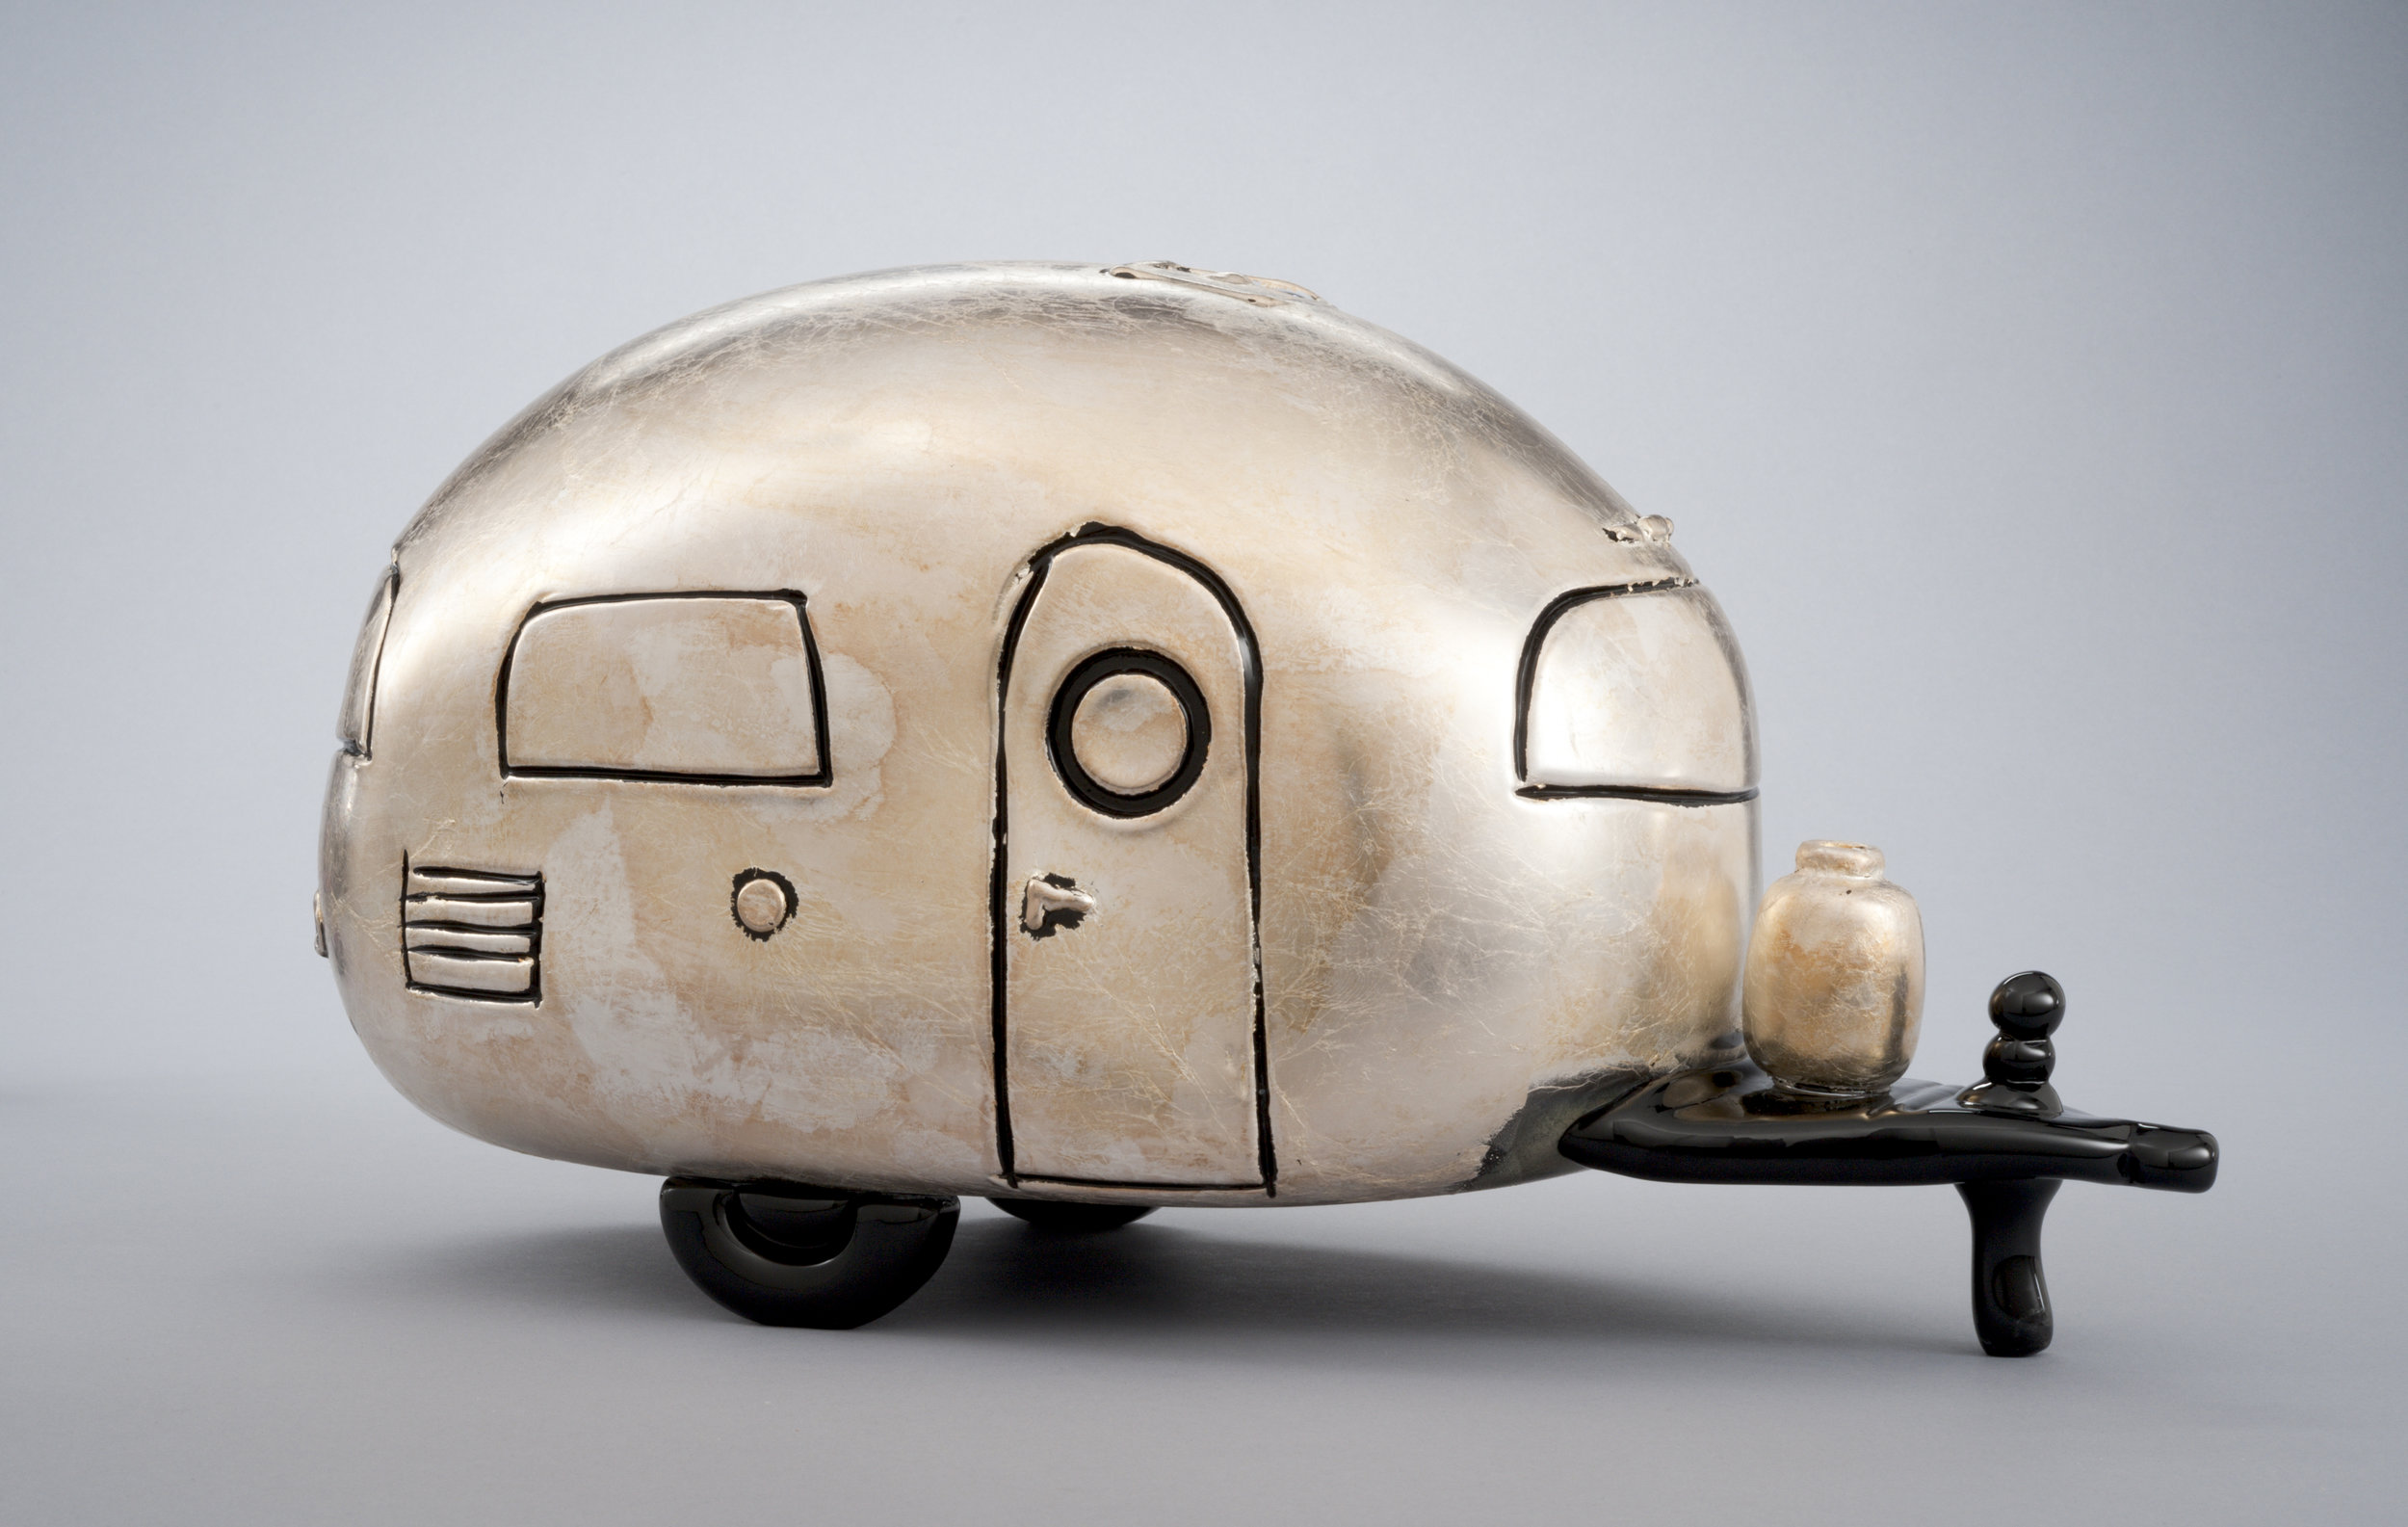 Alex Stisser (American, born 1974). Silver Loaf,  Made at the Museum in 2010.Blown glass and silver foil;8 1/2 x 17 x 7 3/4 in.Collection of Museum of Glass, Tacoma, Washington, gift of the artist.Photo by Duncan Price.